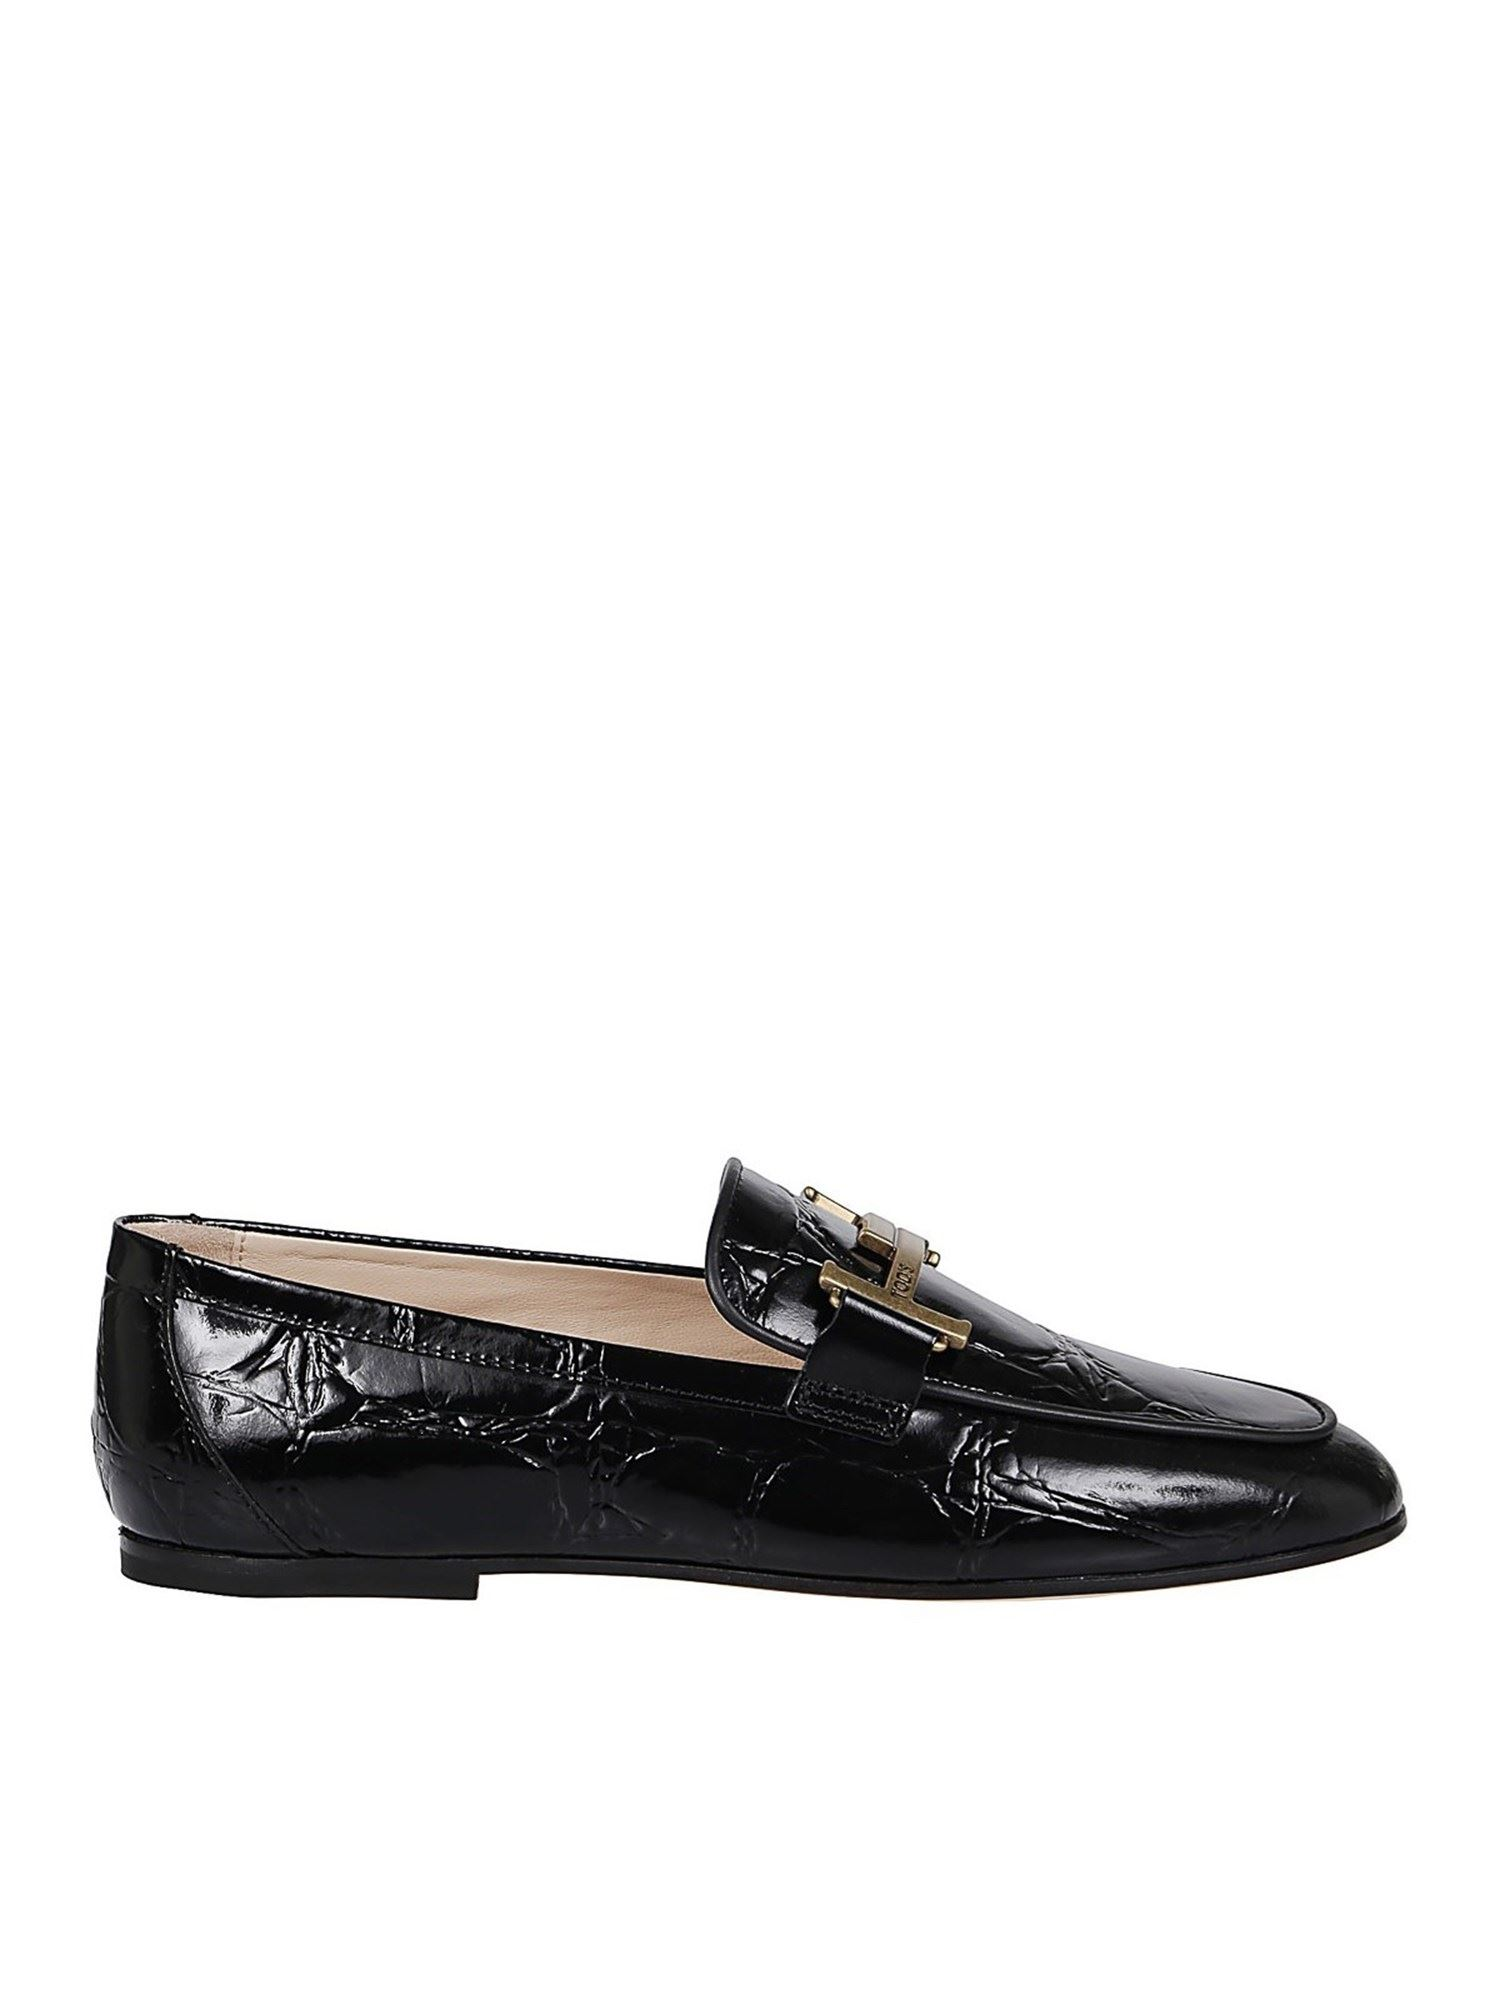 TOD'S CRACKLED LEATHER SLIPPERS IN BLACK